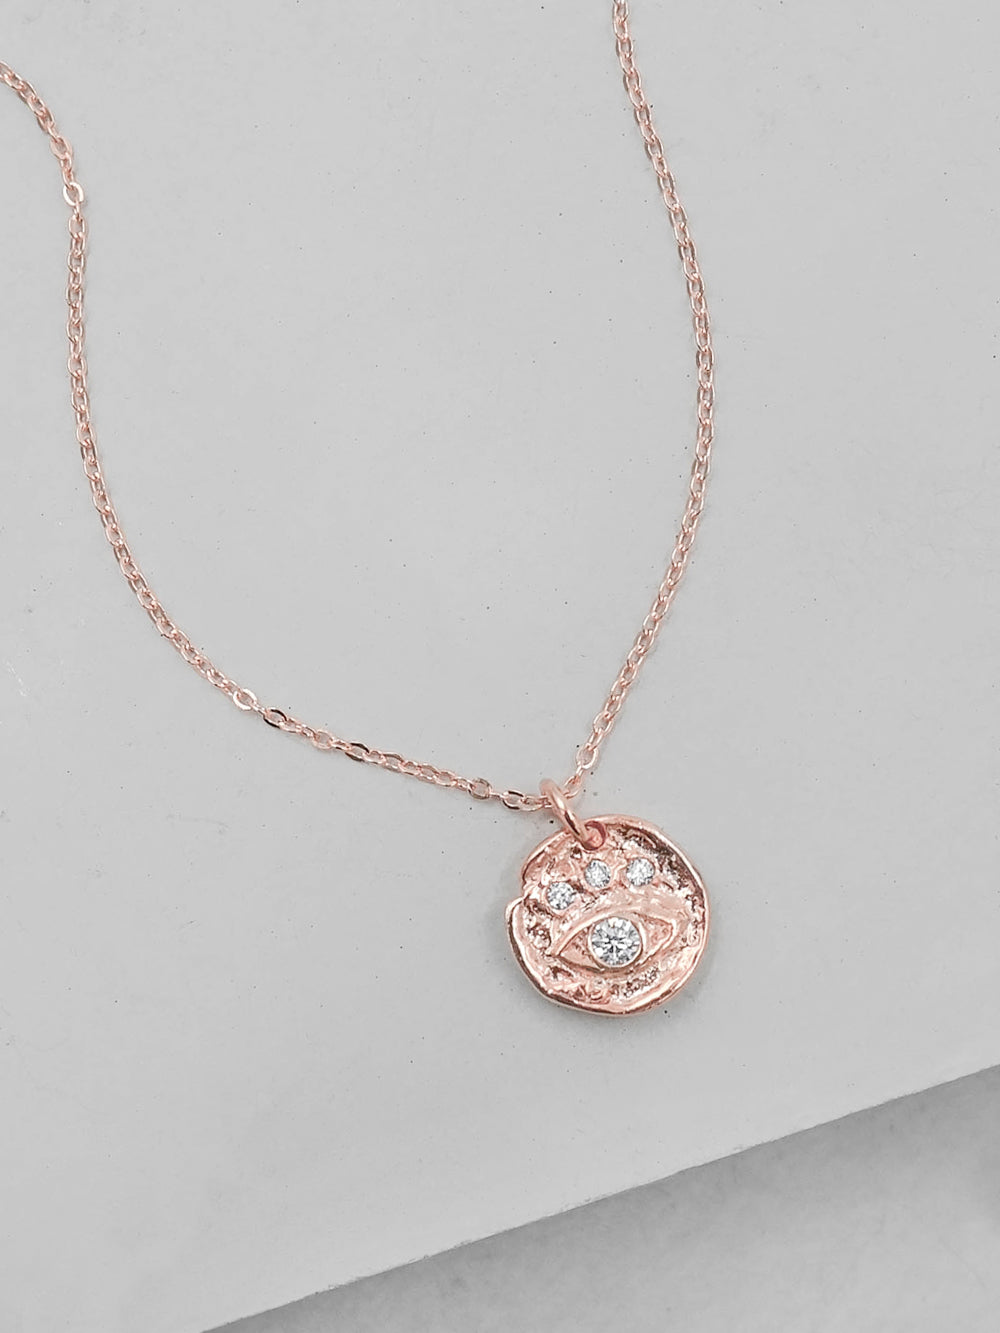 Rose Gold Vermeil evil Eye Charm  Necklace by The Faint Hearted Jewelry